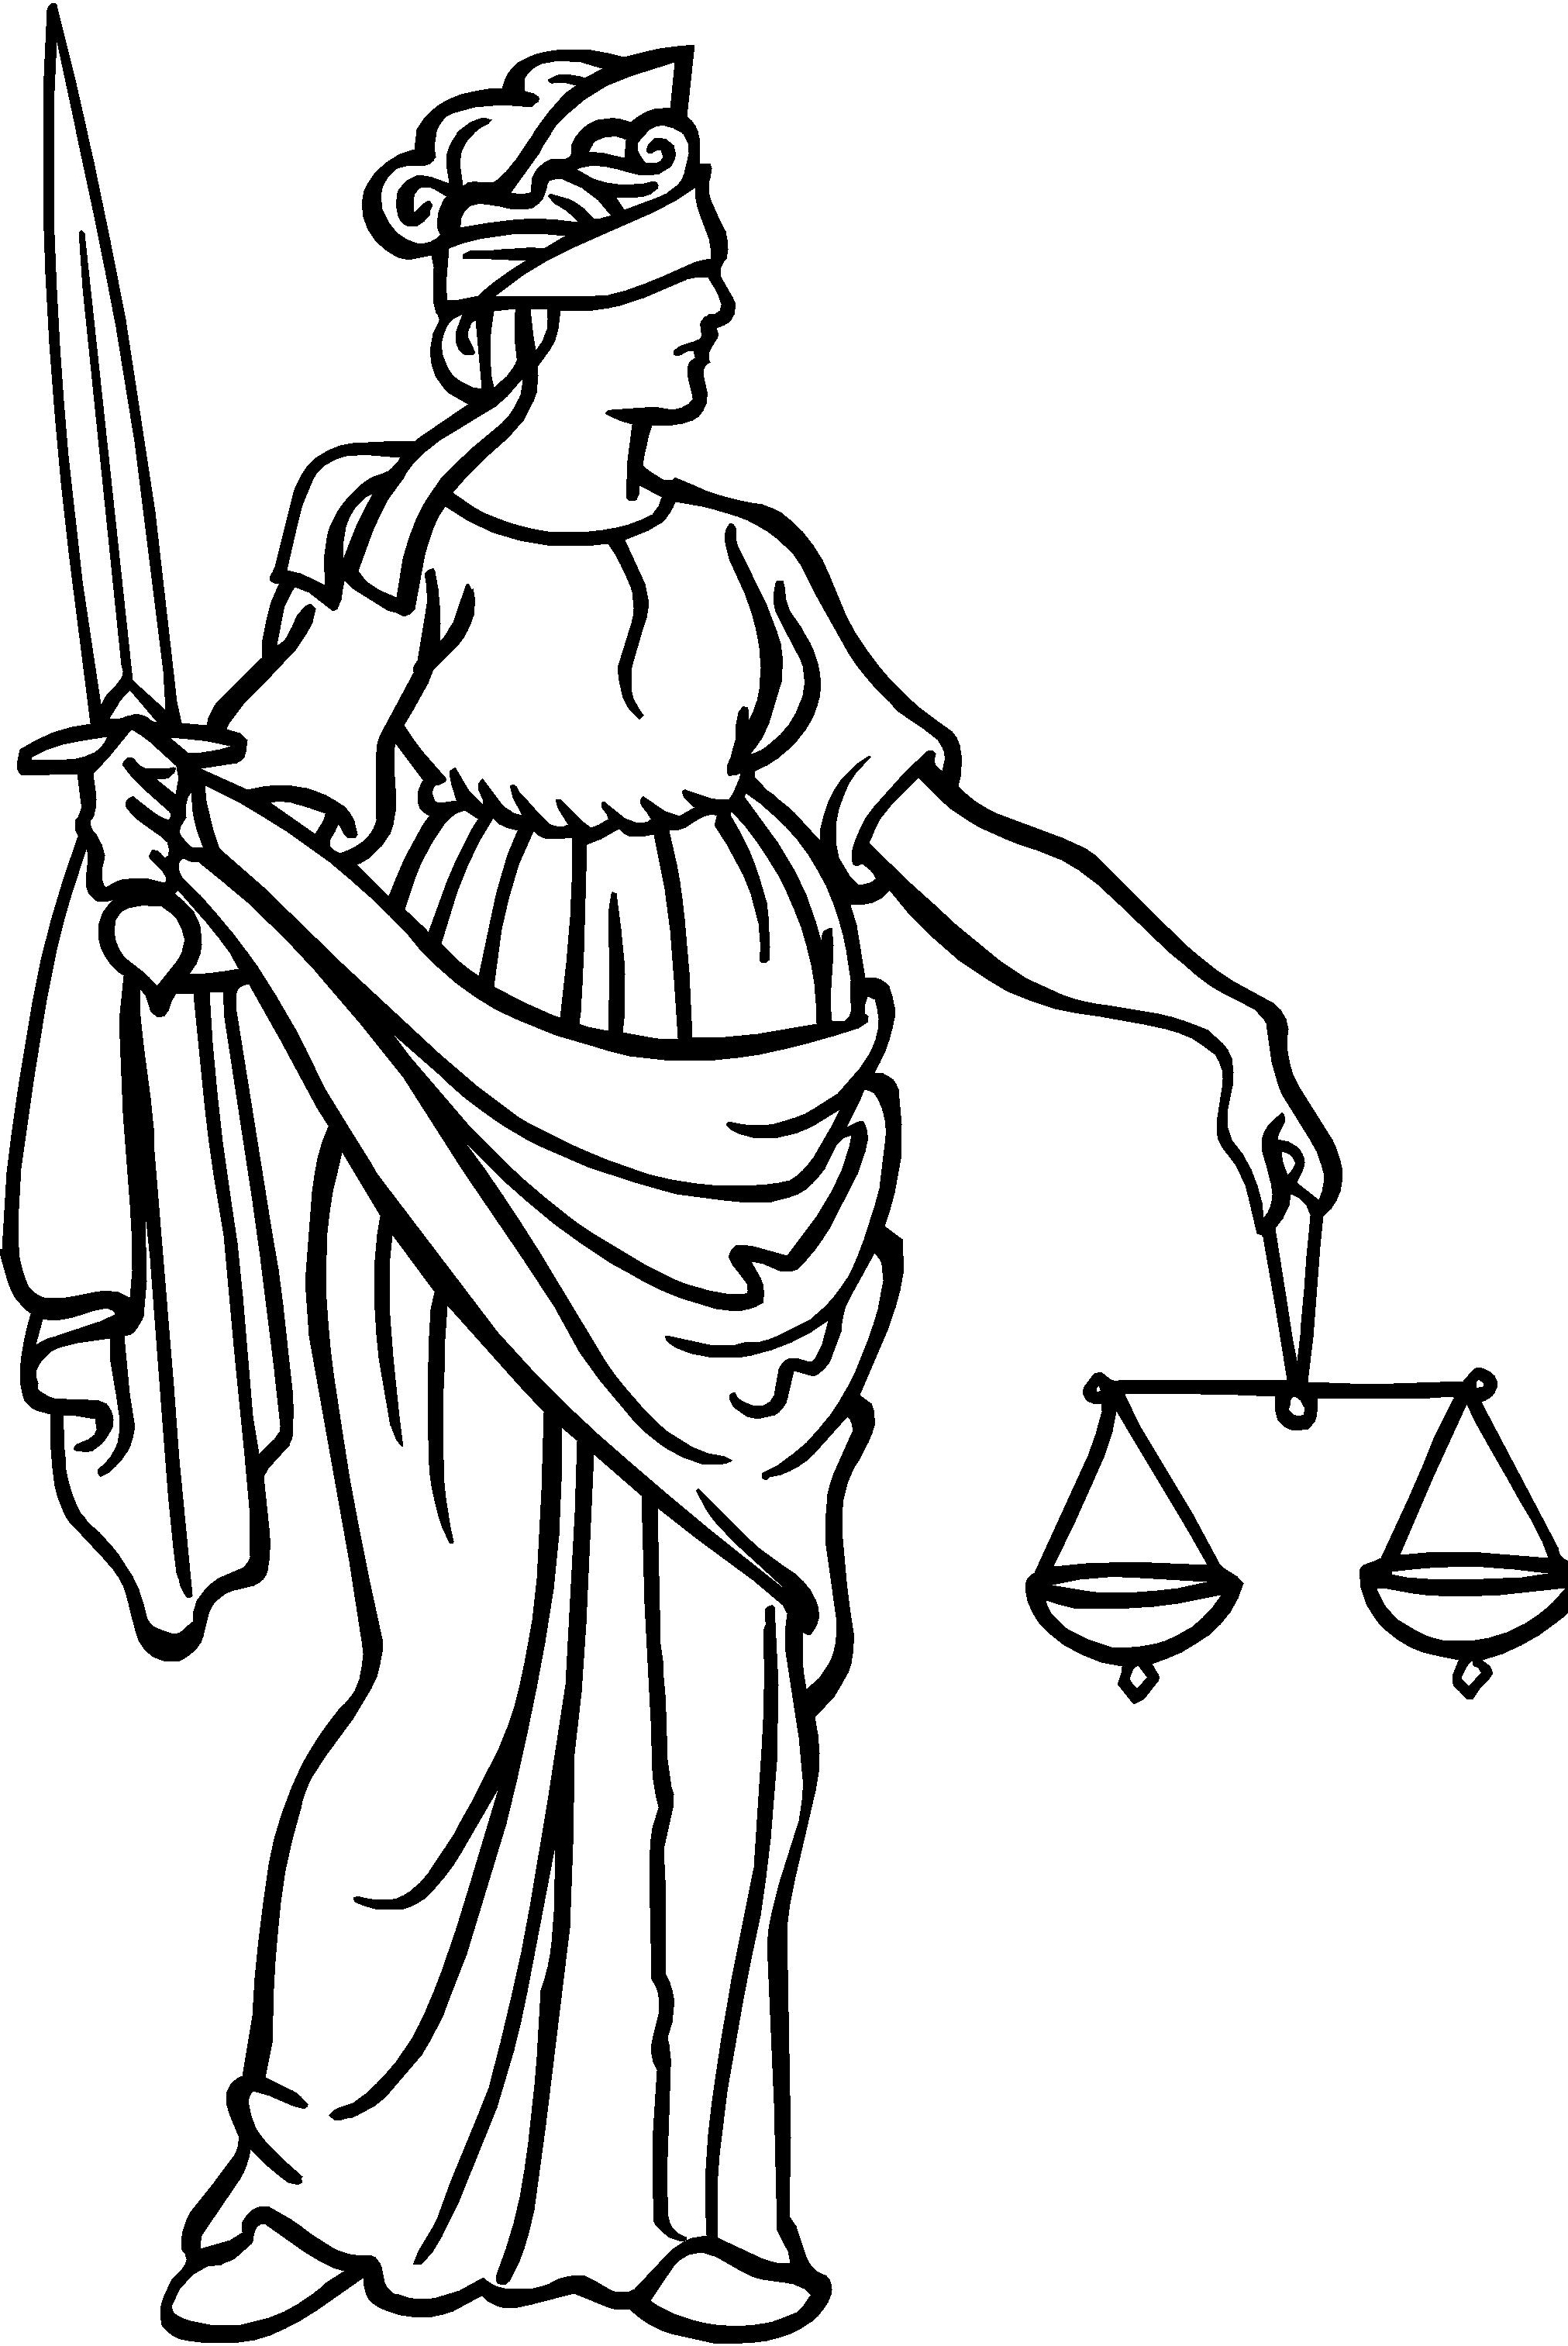 Blind justice clipart - Clipground